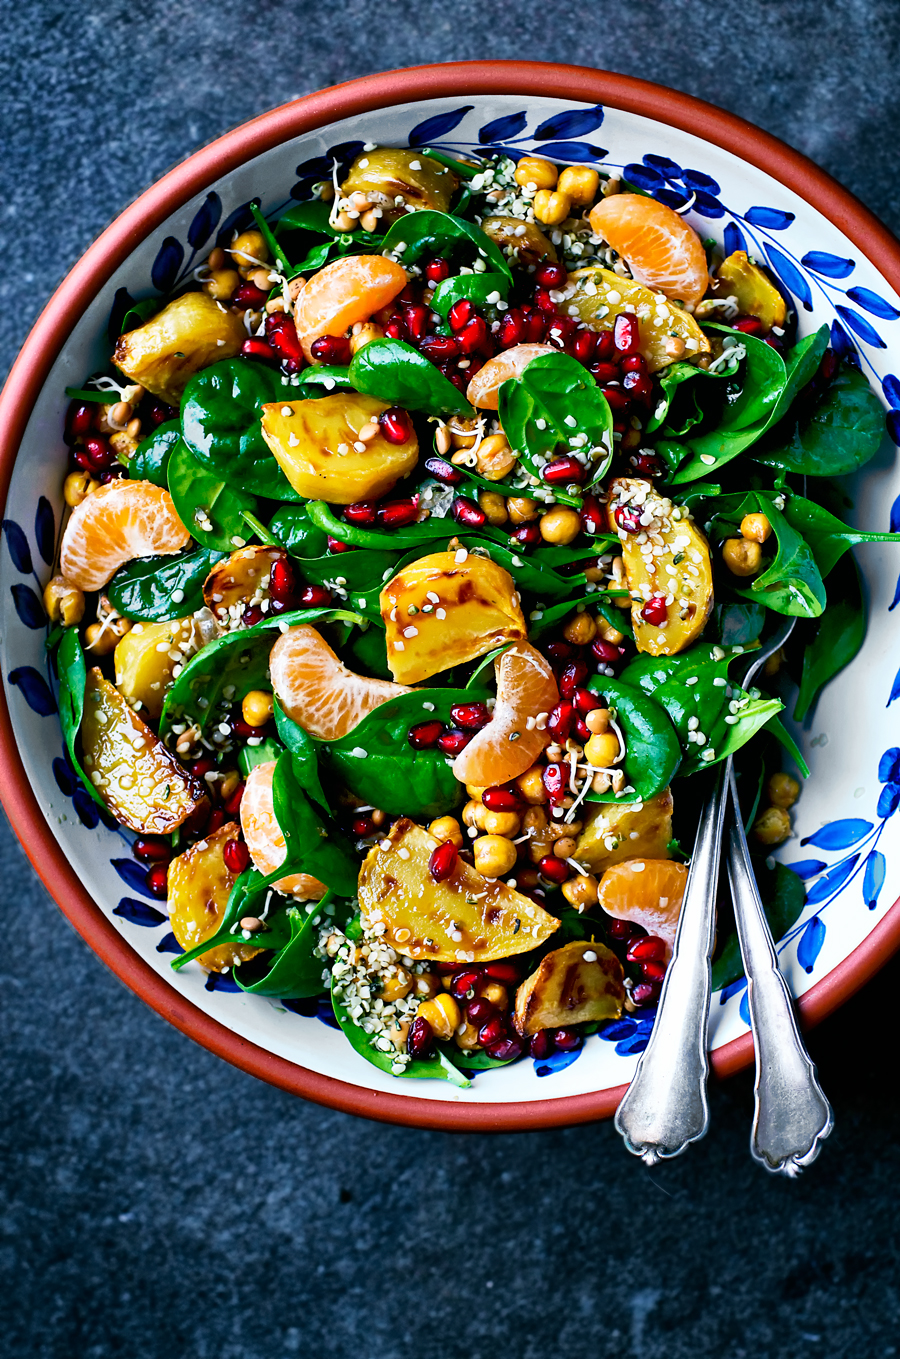 Winter spinach salad with roasted beets, mandarin, pomegranate, and roasted chickpeas. This jewel toned salad is perfect for lunches and a nice way to get some veggies in, even in wintertime. With a balsamic ginger vinaigrette.